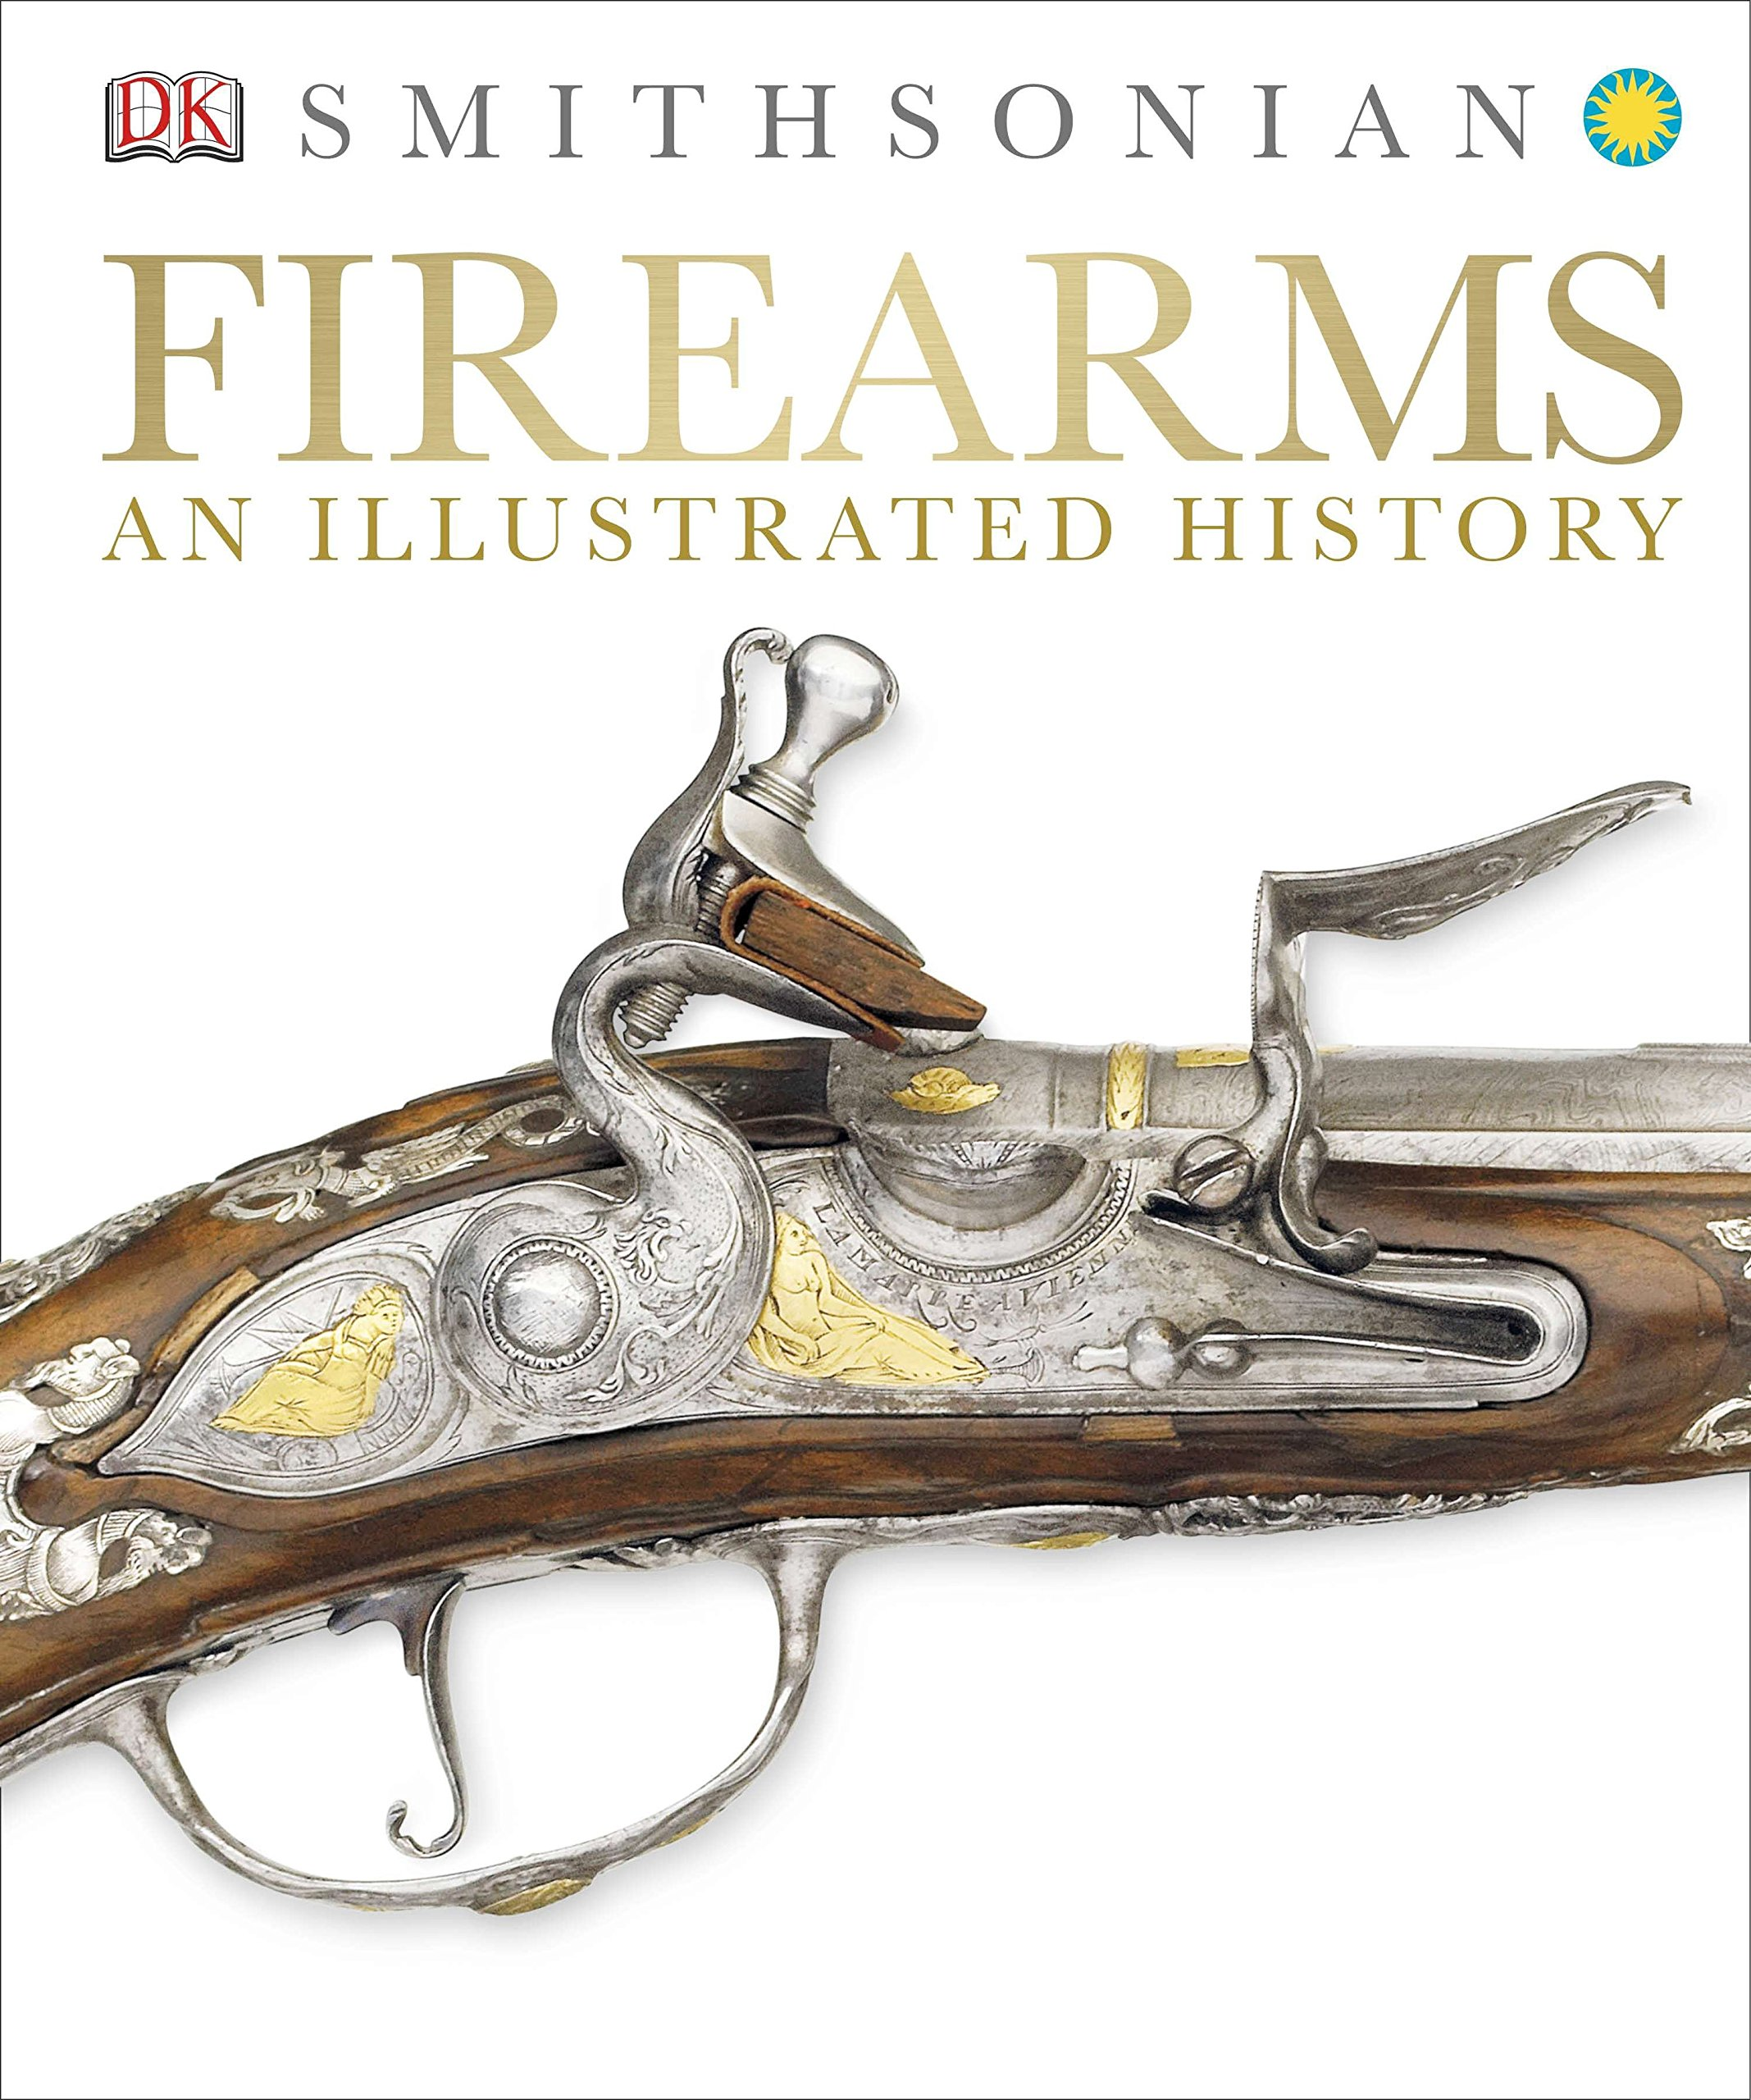 Firearms: An Illustrated History: Amazon co uk: DK: 9781465416056: Books